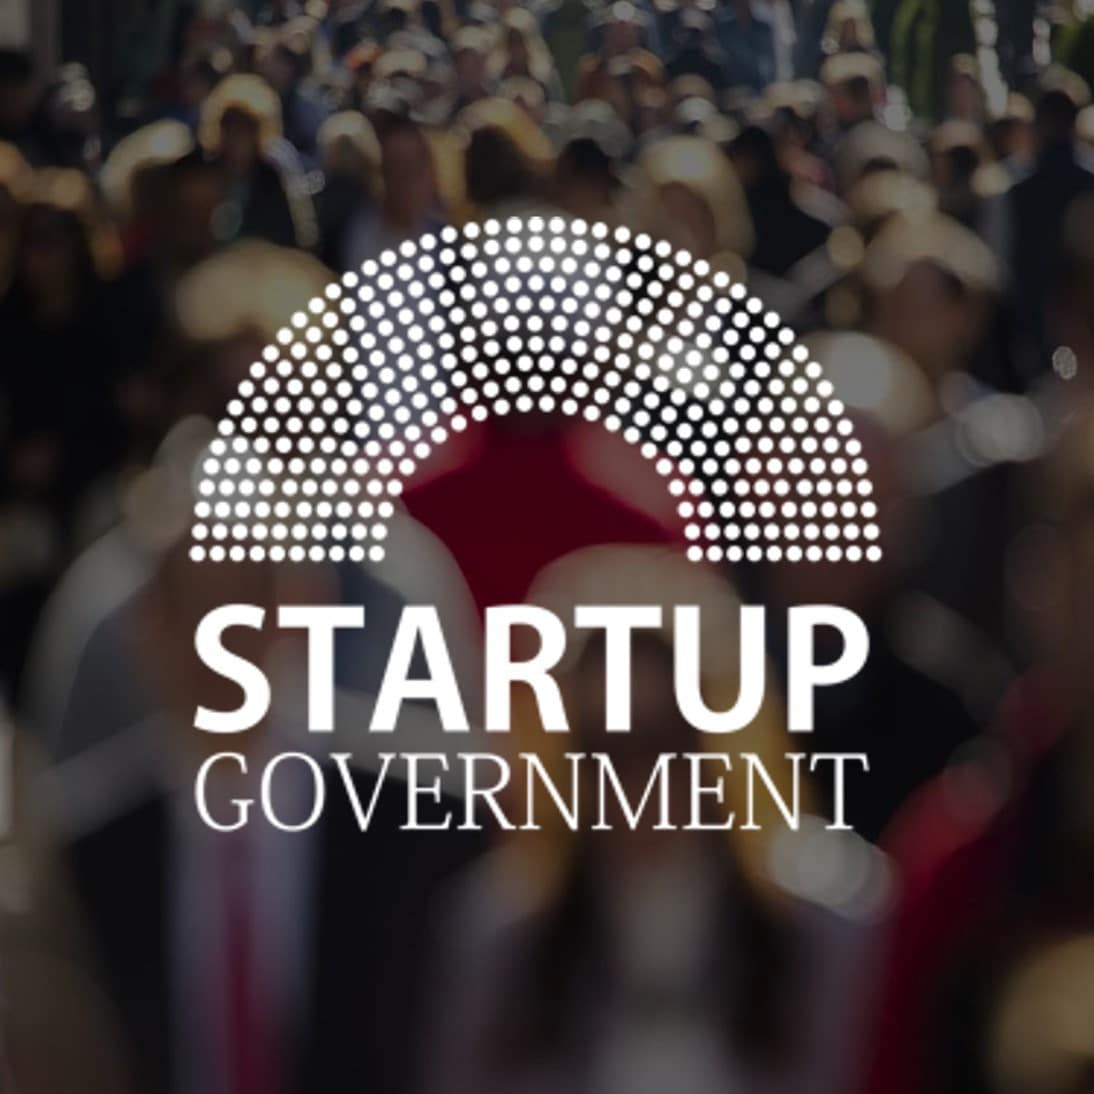 Startup Government